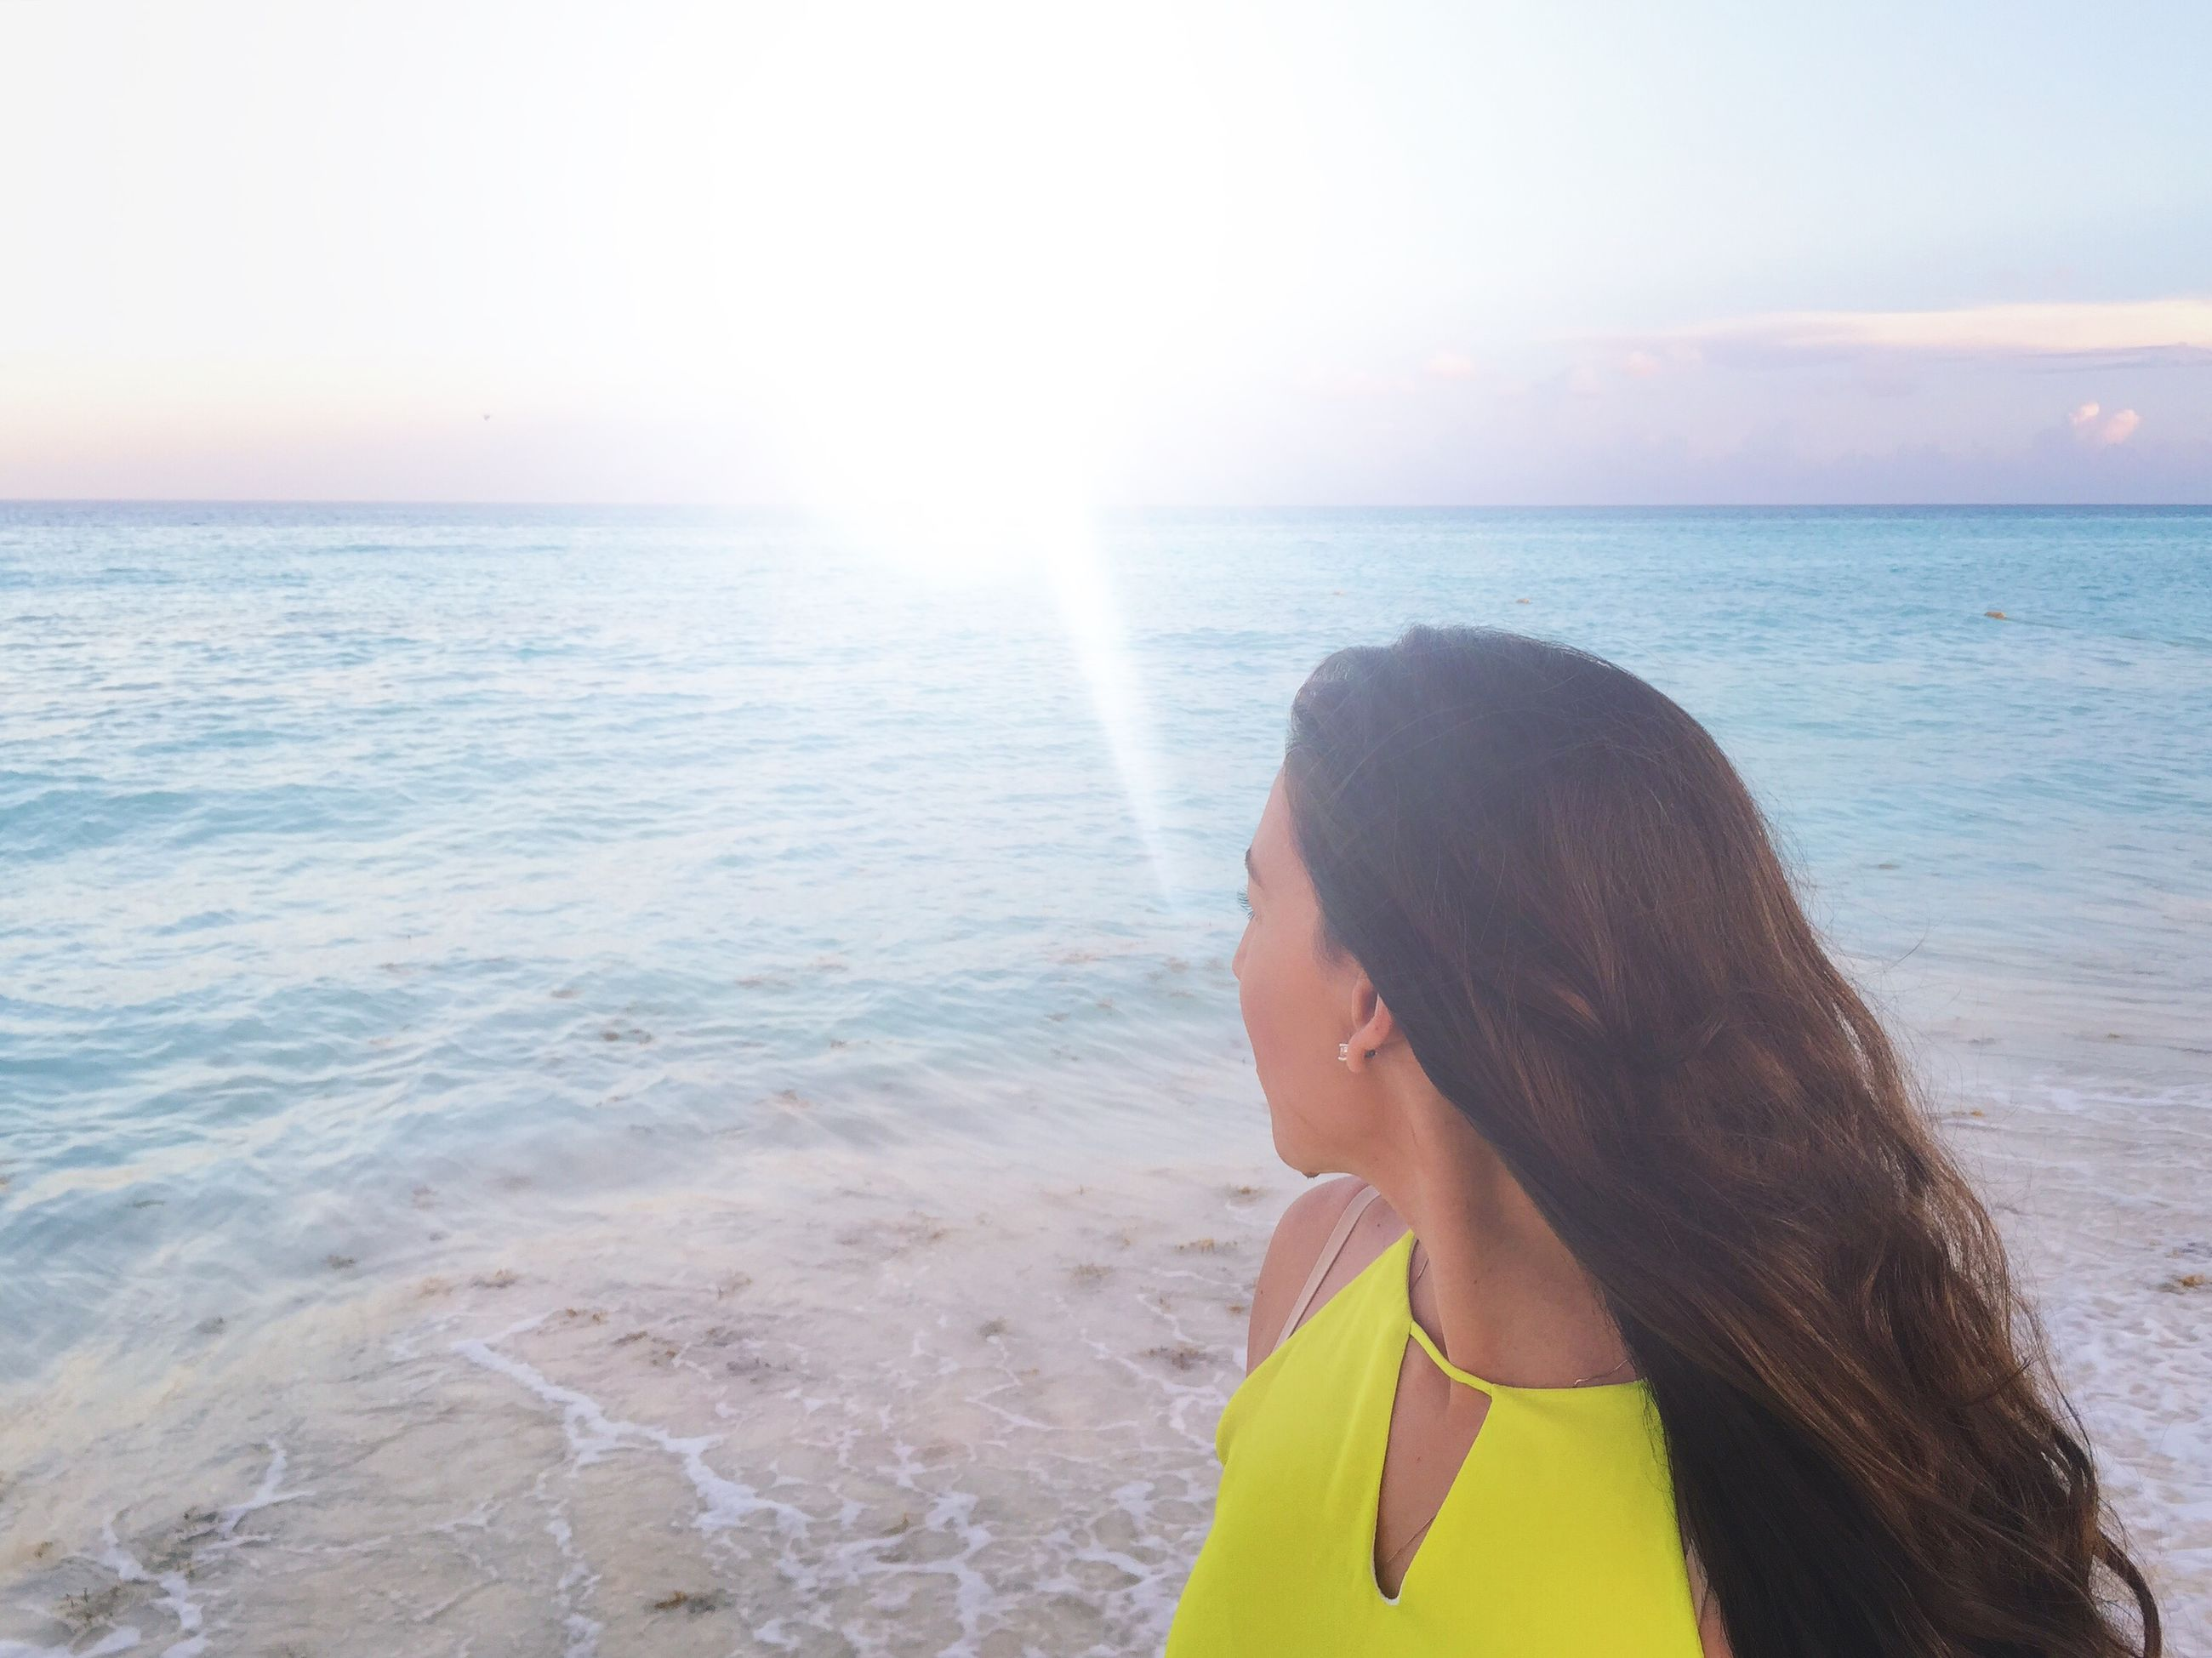 sea, horizon over water, water, lifestyles, beach, leisure activity, sky, young adult, beauty in nature, scenics, shore, sunlight, tranquil scene, nature, young women, vacations, tranquility, sun